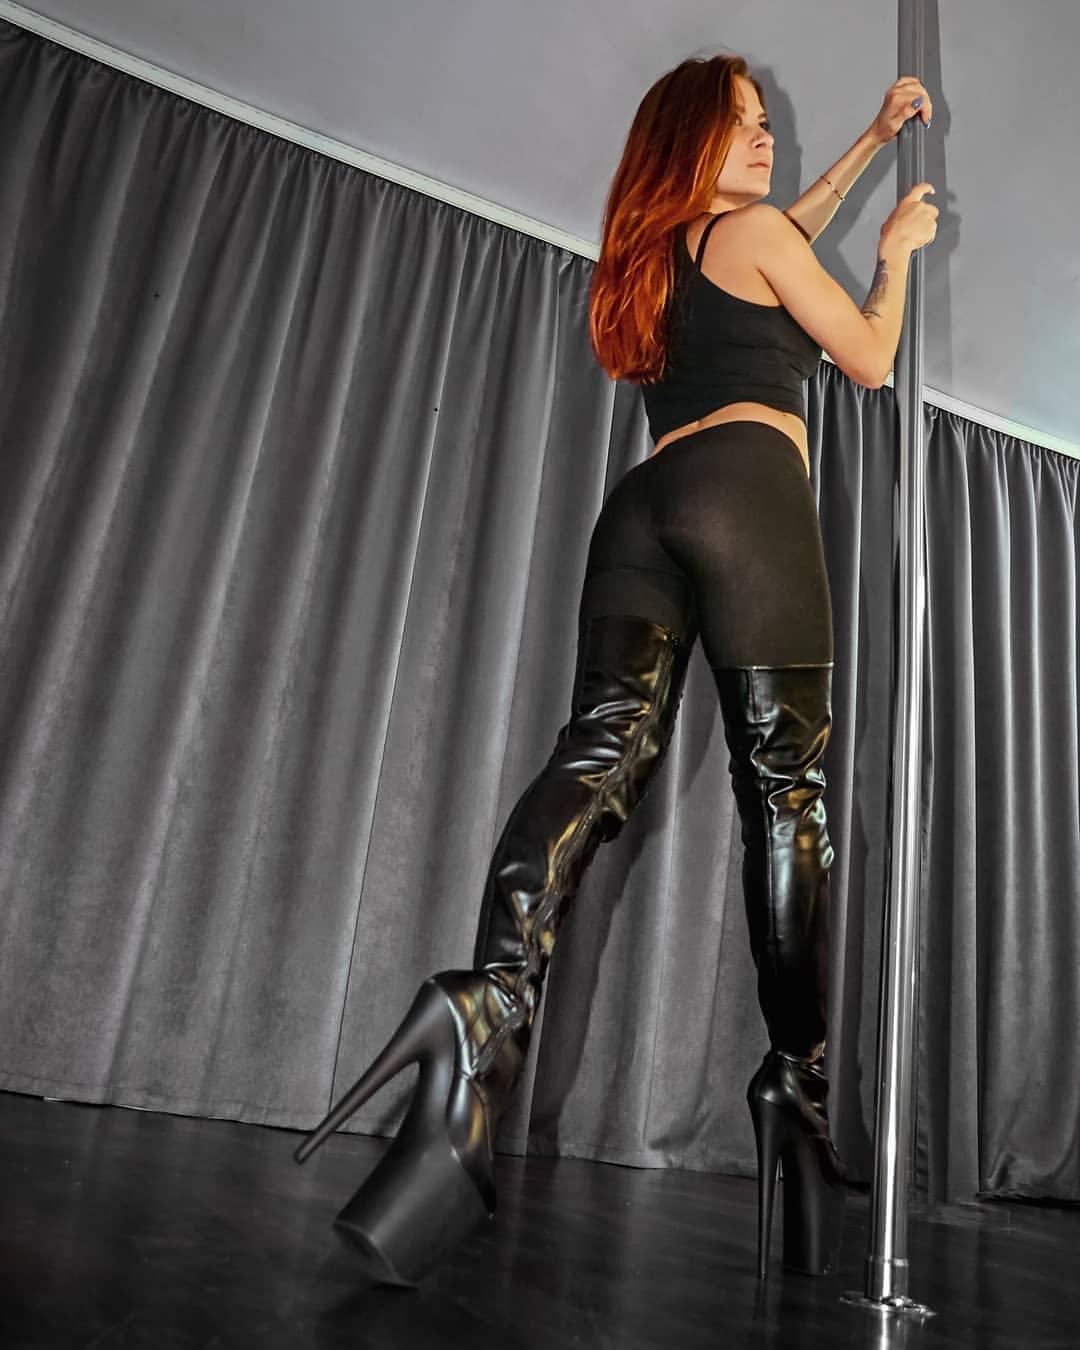 Popular exotic dancing shoes are high boots above the knees.